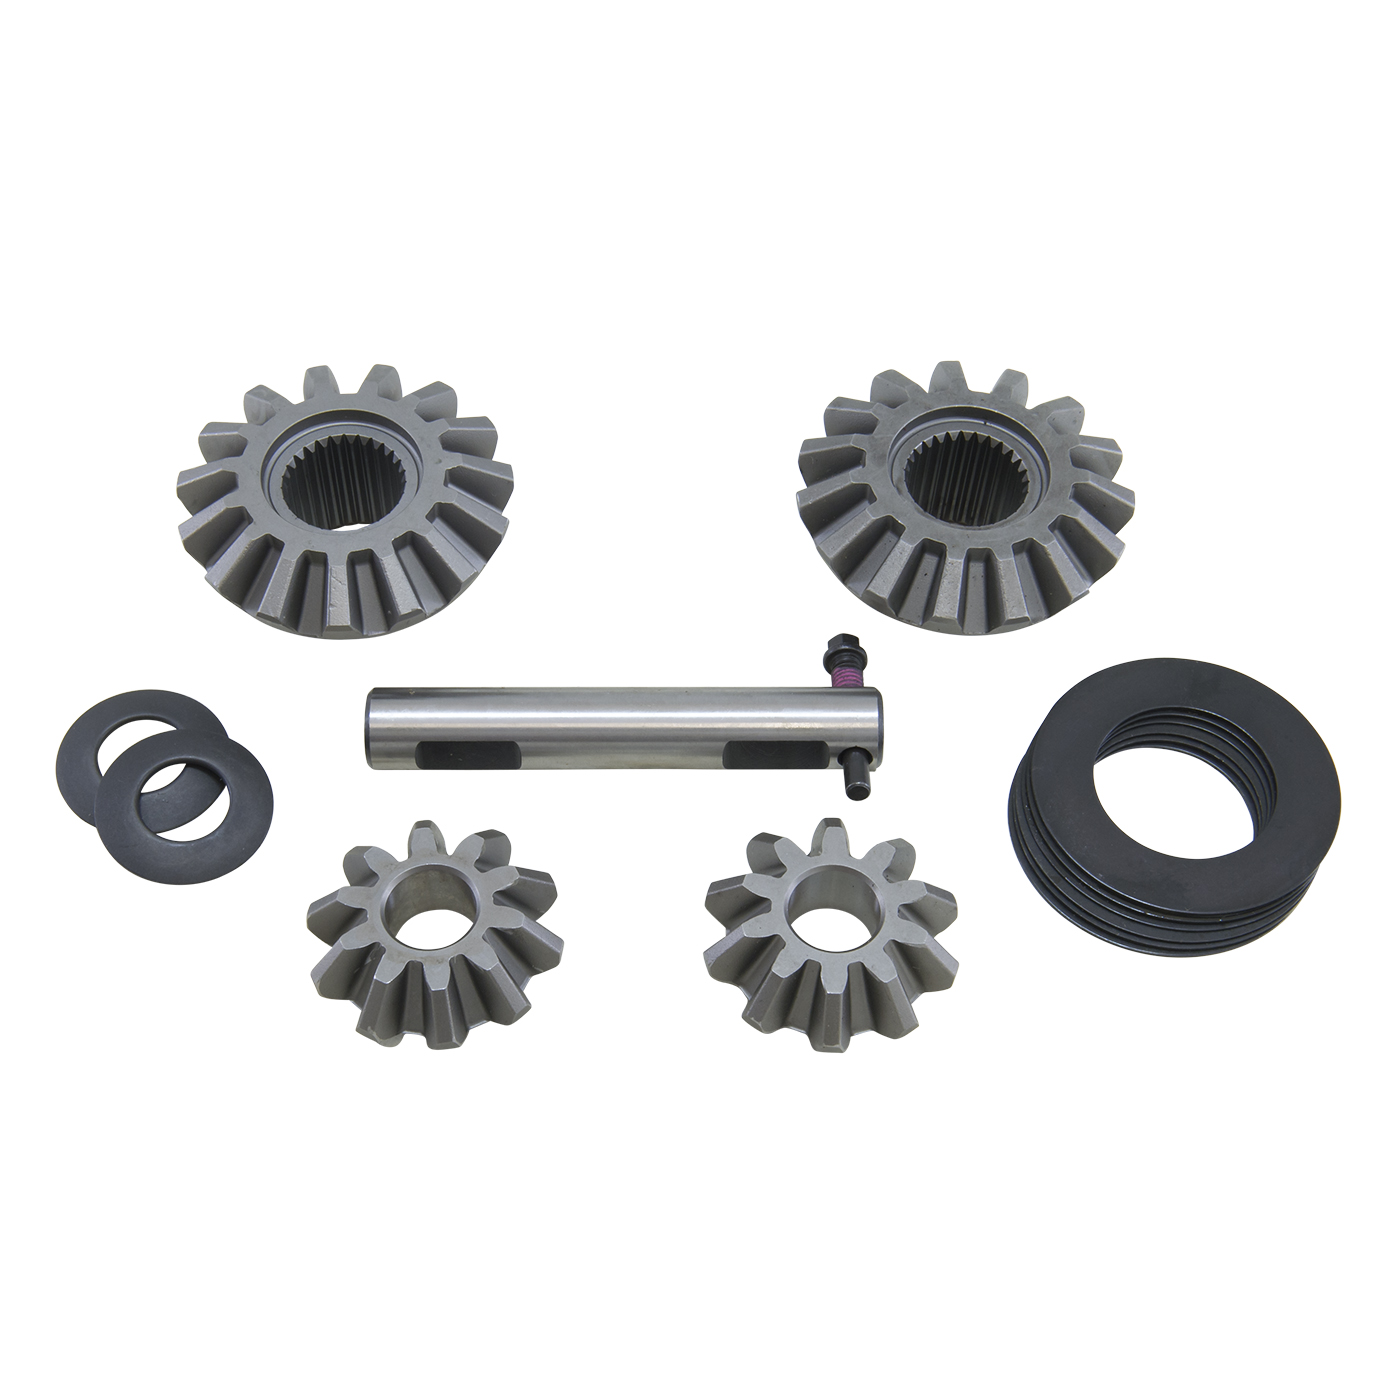 YPKC8.25-S-27 - Yukon standard open spider gear kit for '96 and older 8.25